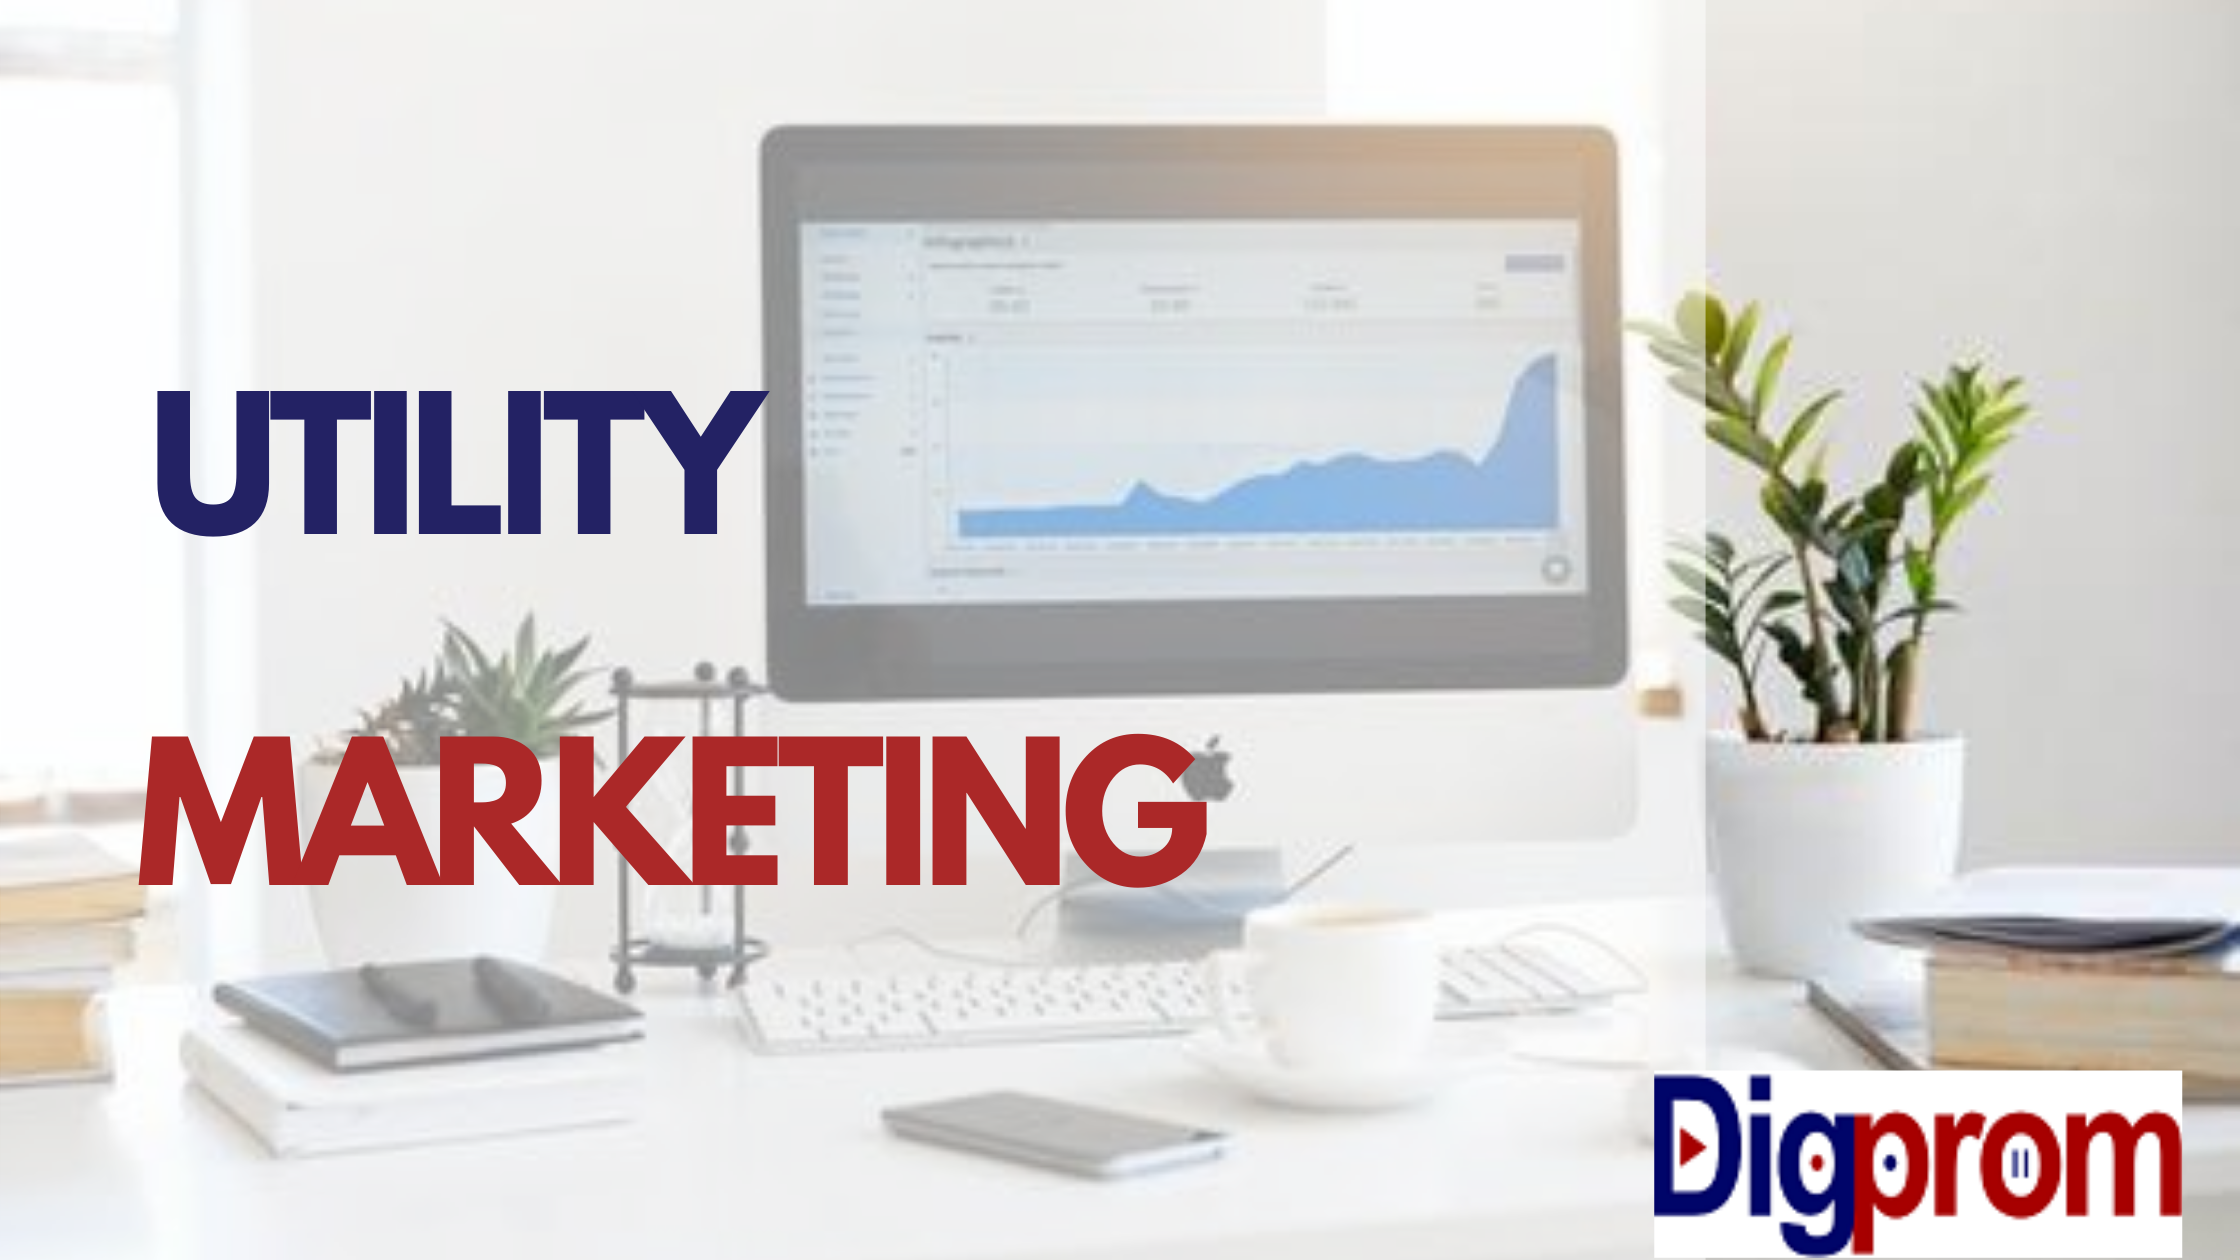 What is Utility Marketing? And Forms of Utility Marketing